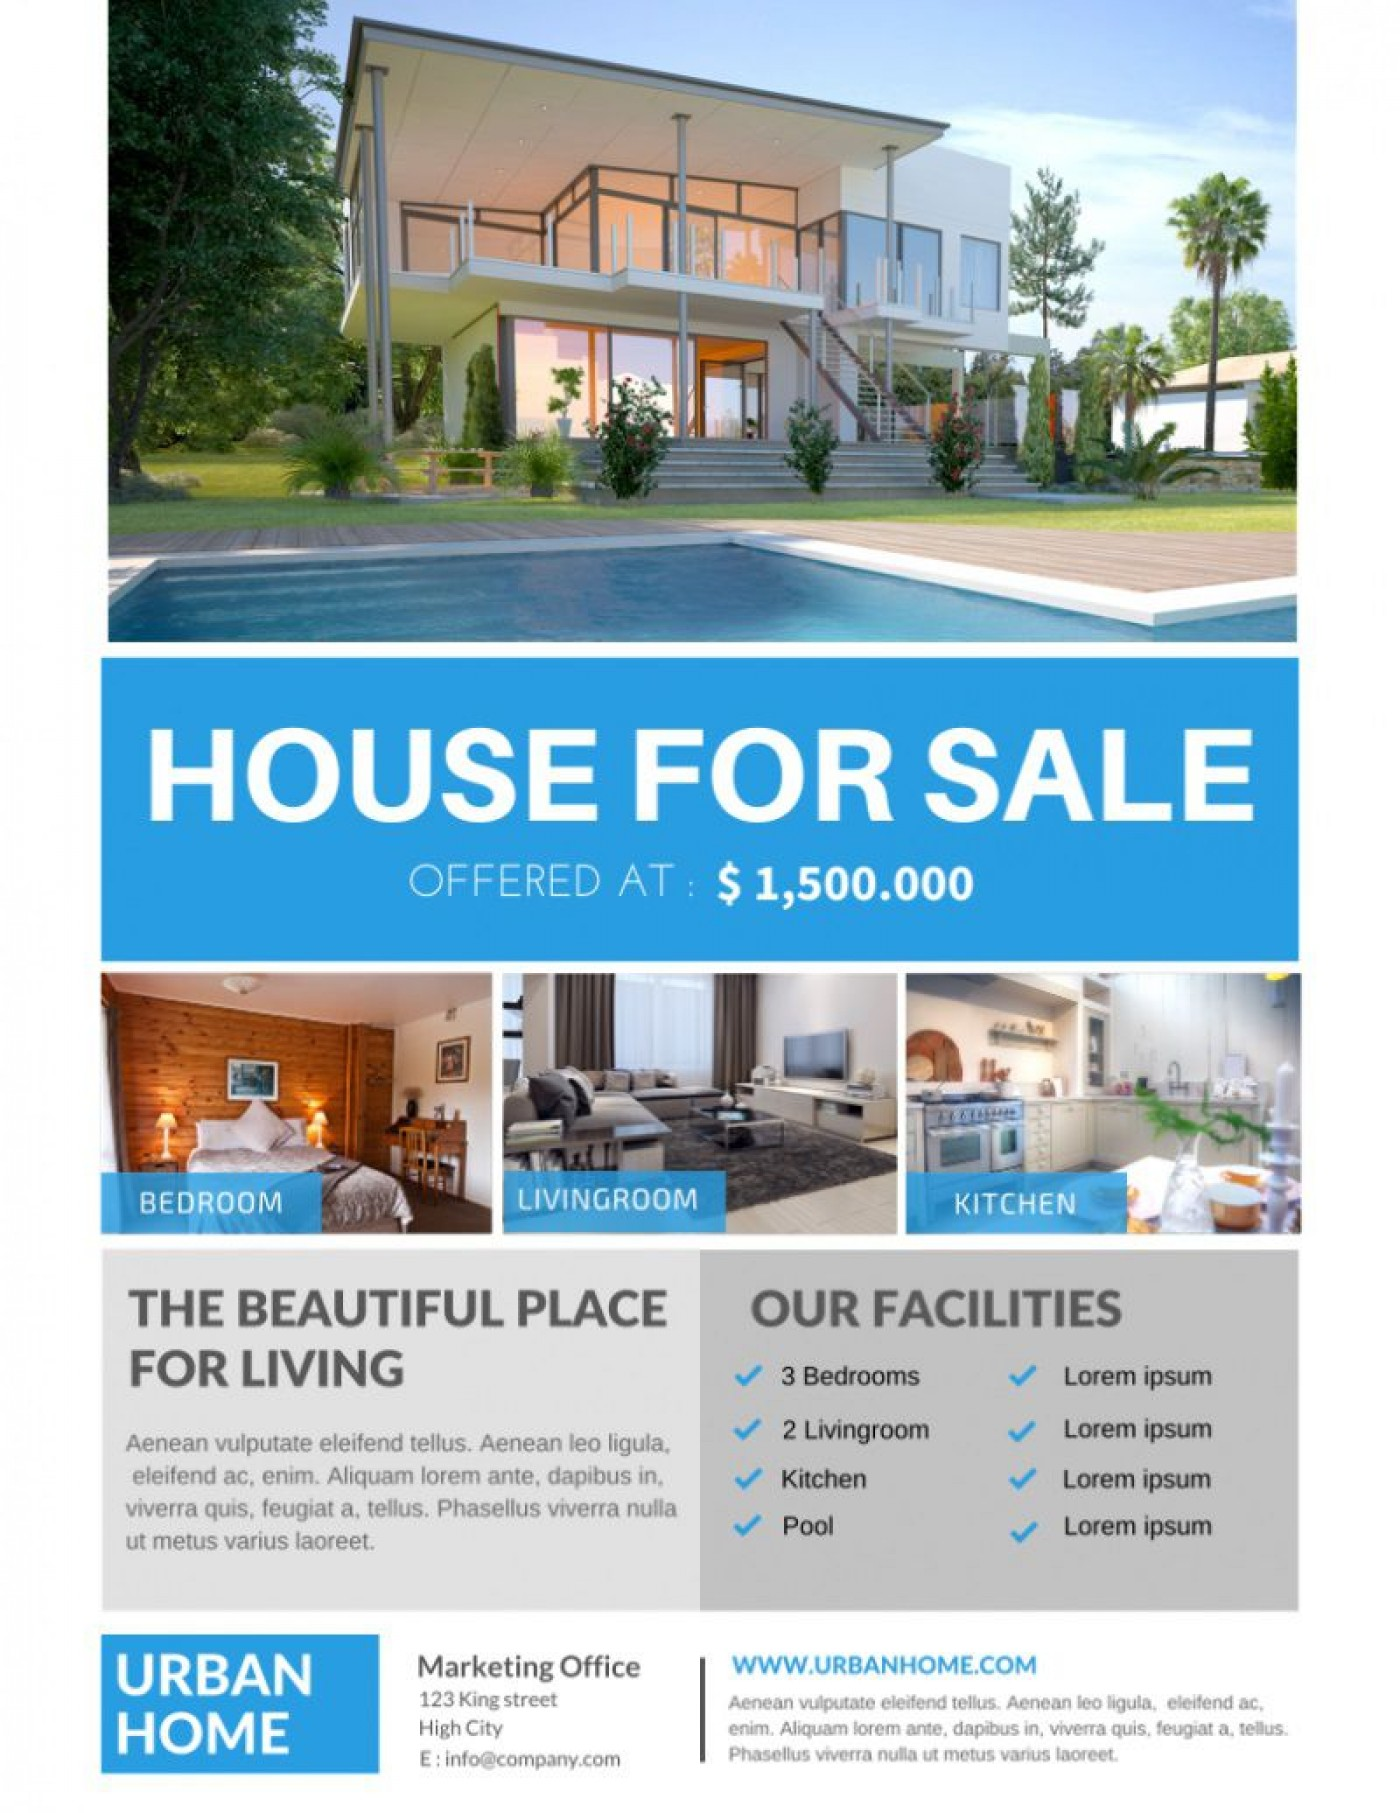 007 Breathtaking House For Sale Flyer Template Inspiration  Free Real Estate Example By Owner1400